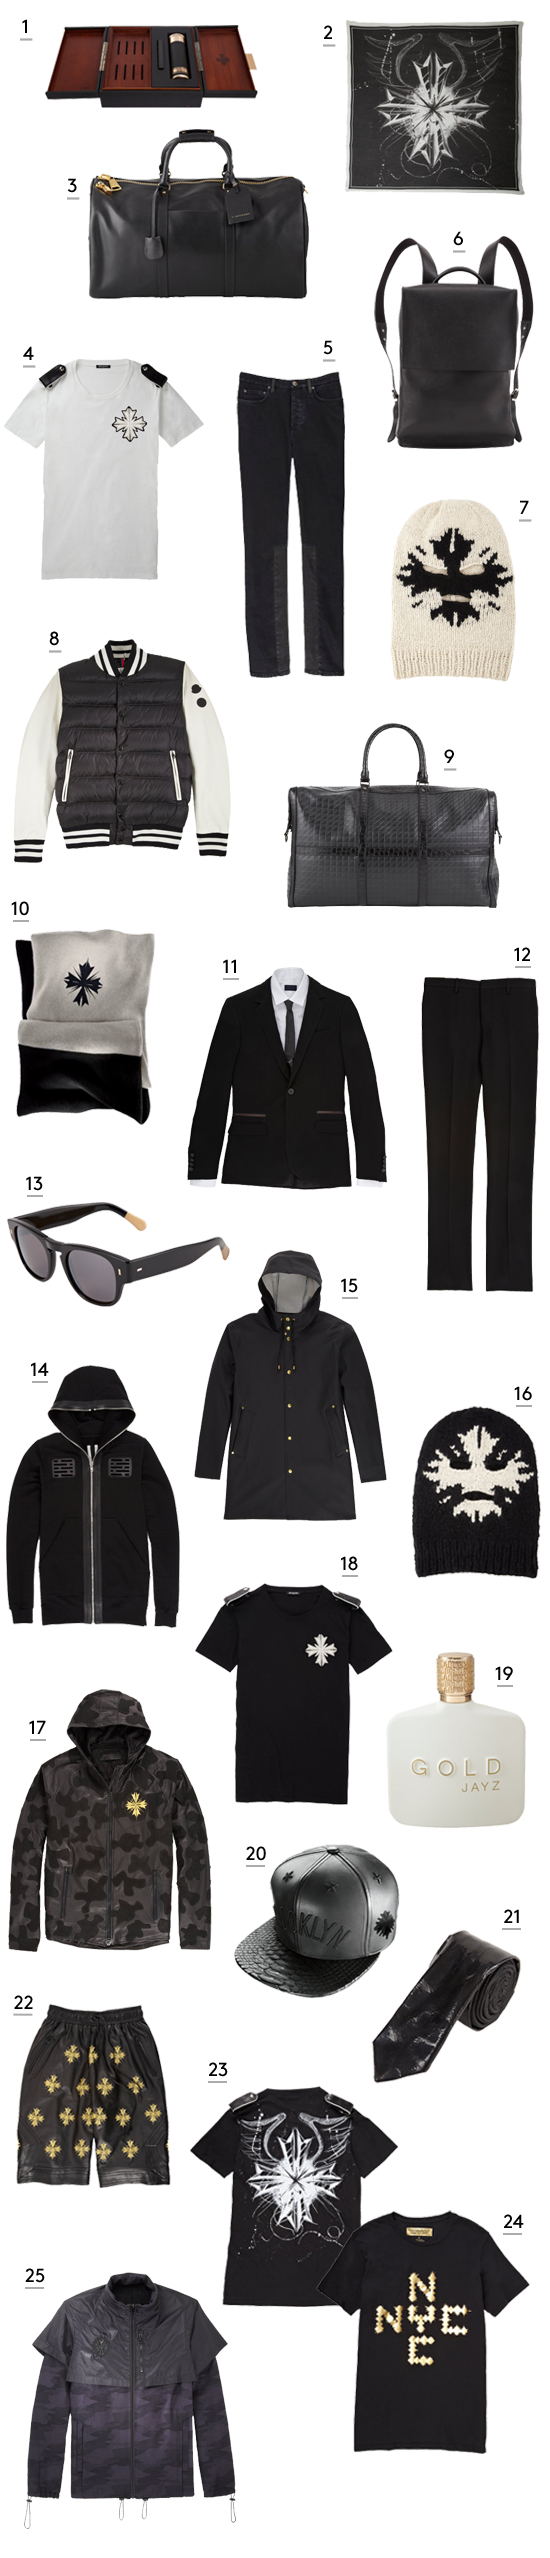 Jay-Z Launches Christmas Collection With Barneys New York